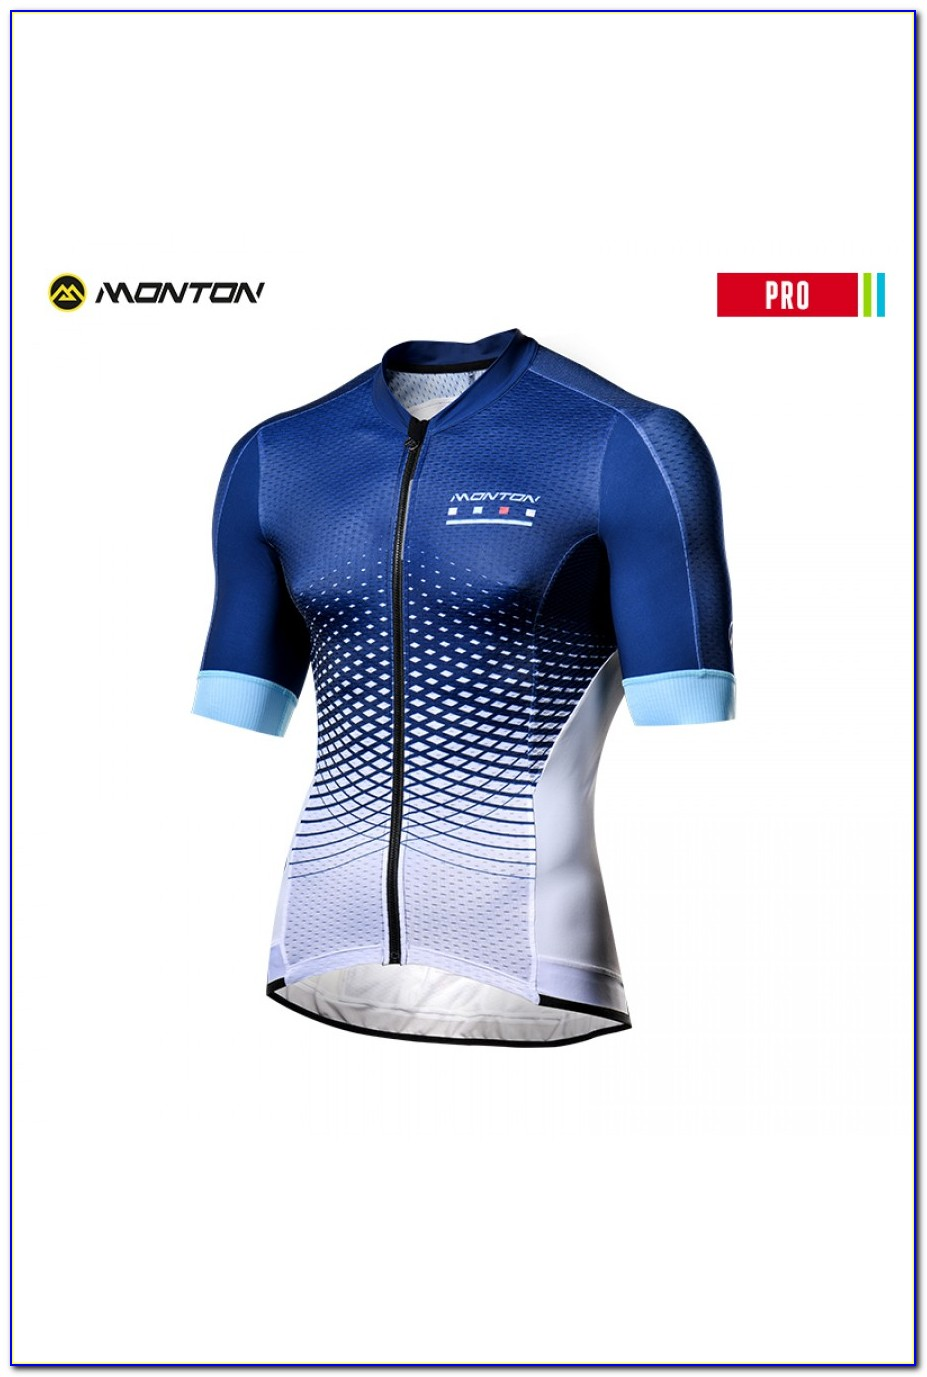 Cycling Clothing Design Template